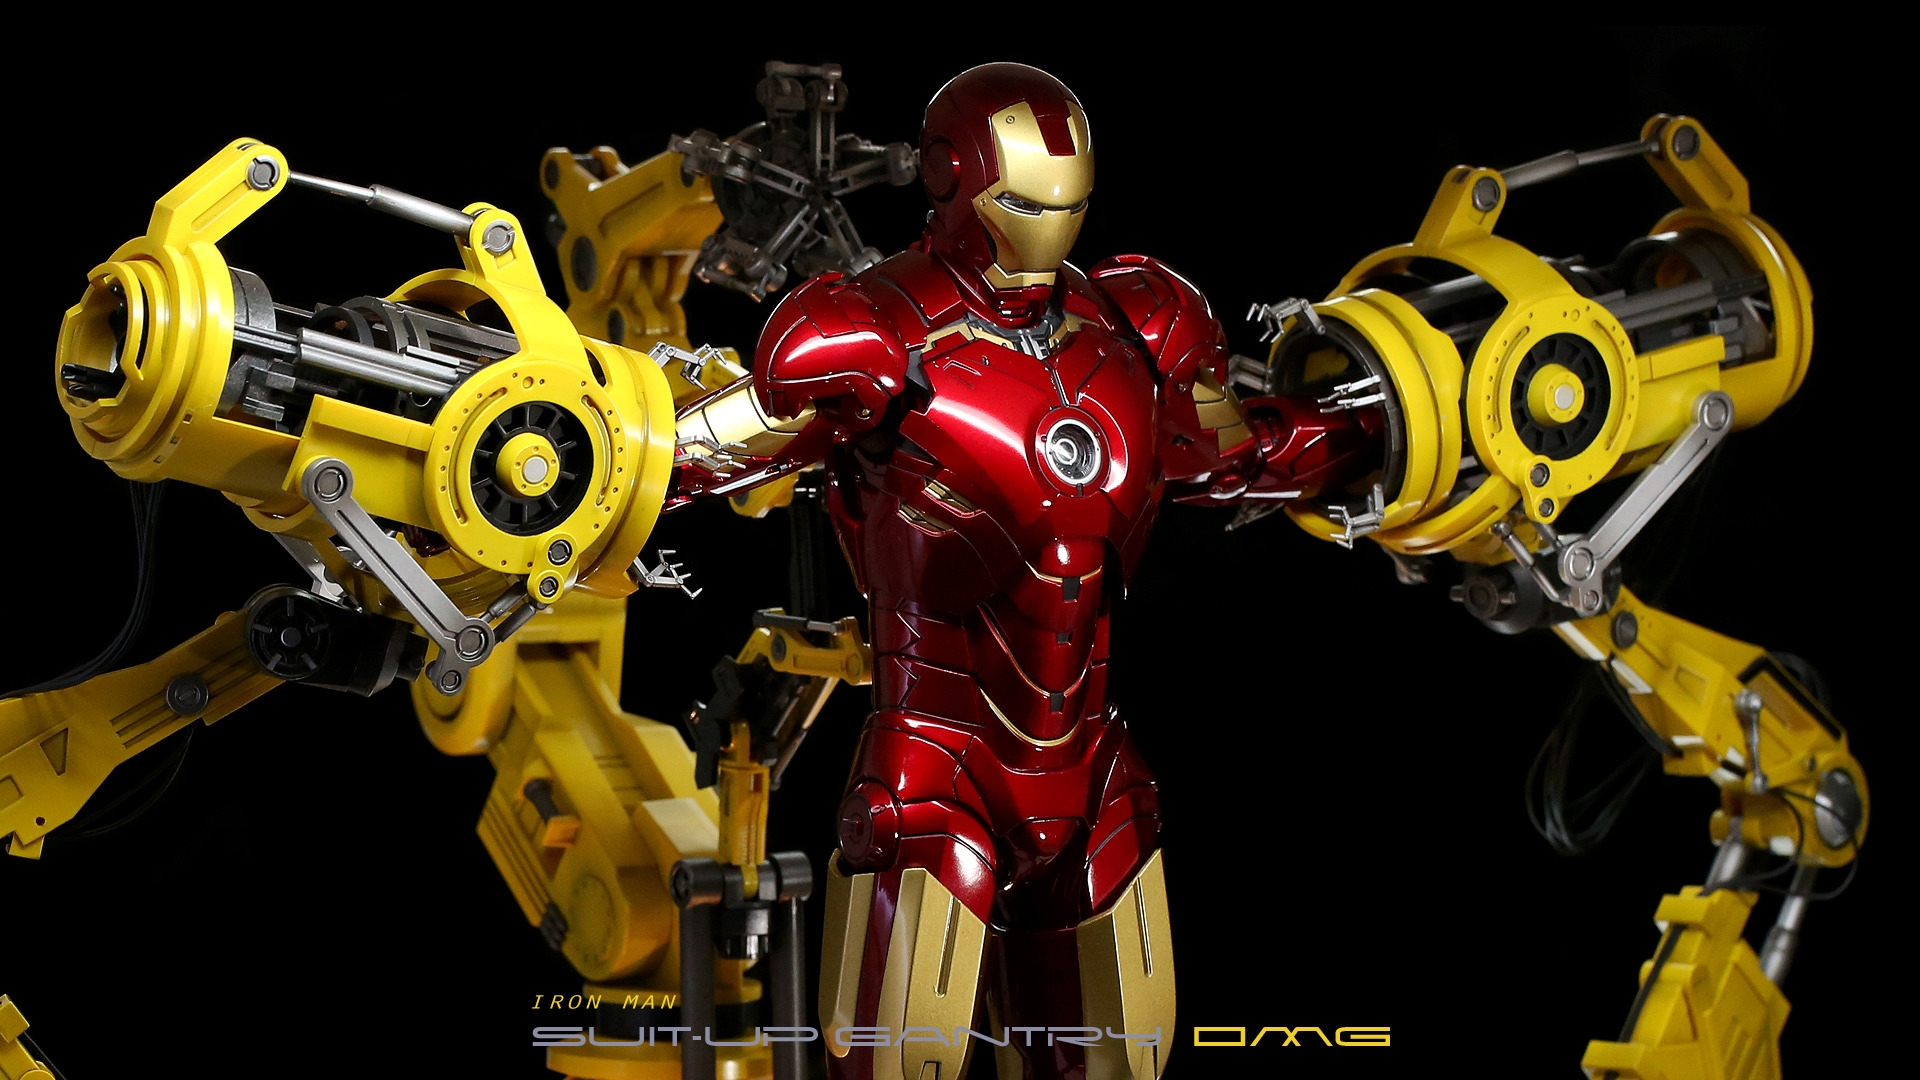 iron man 3 free download - hd desktop wallpapers | 4k hd